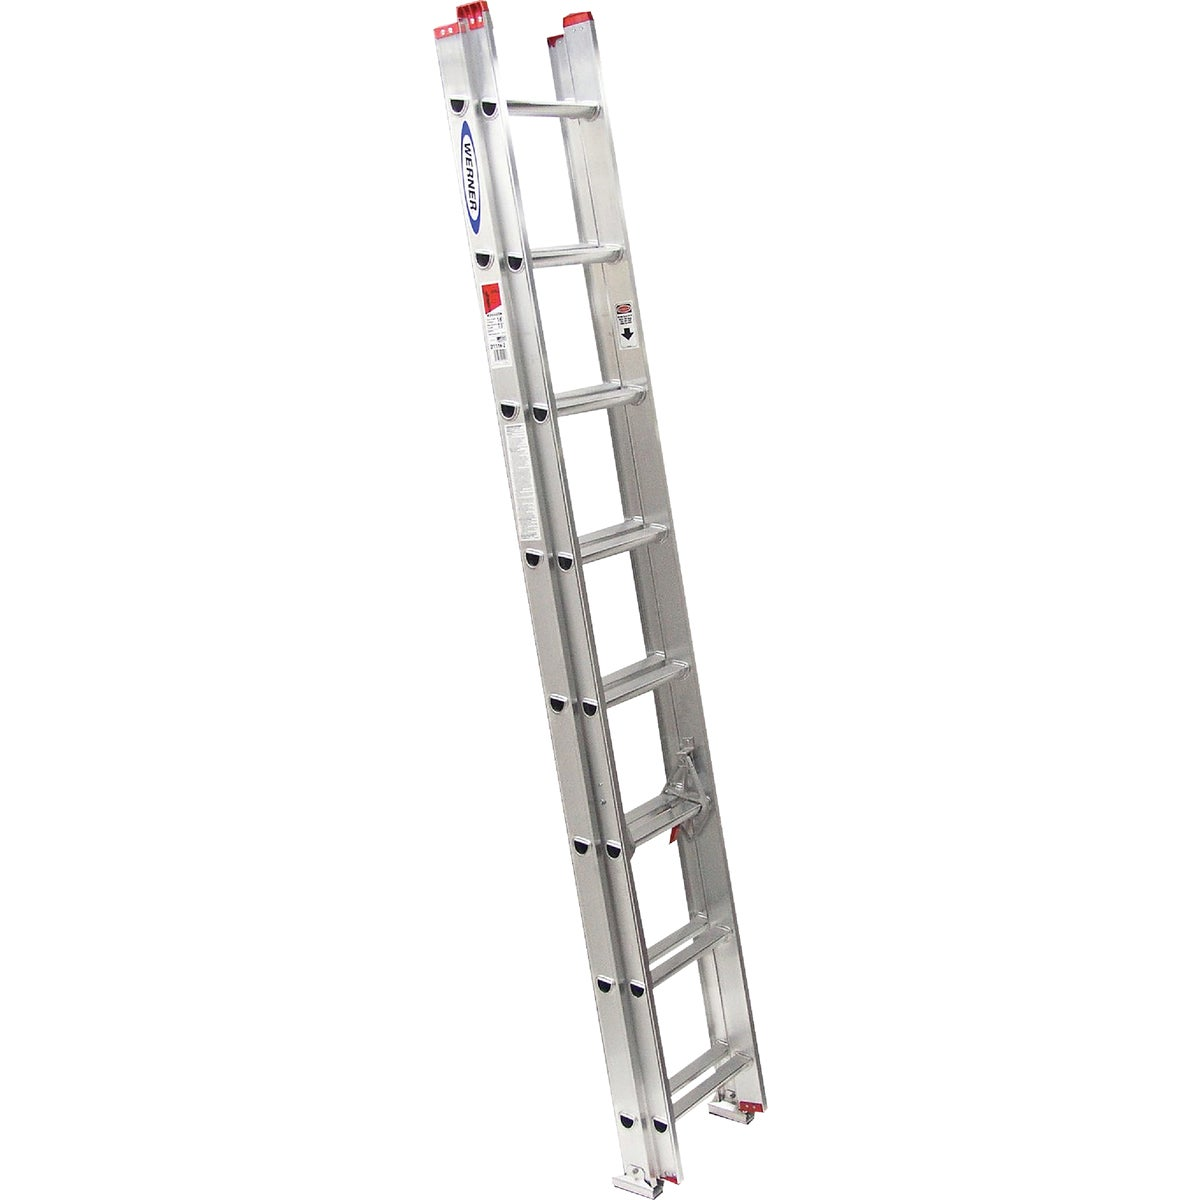 T-3 16' ALUM EXT LADDER - D1116-2 by Werner Co